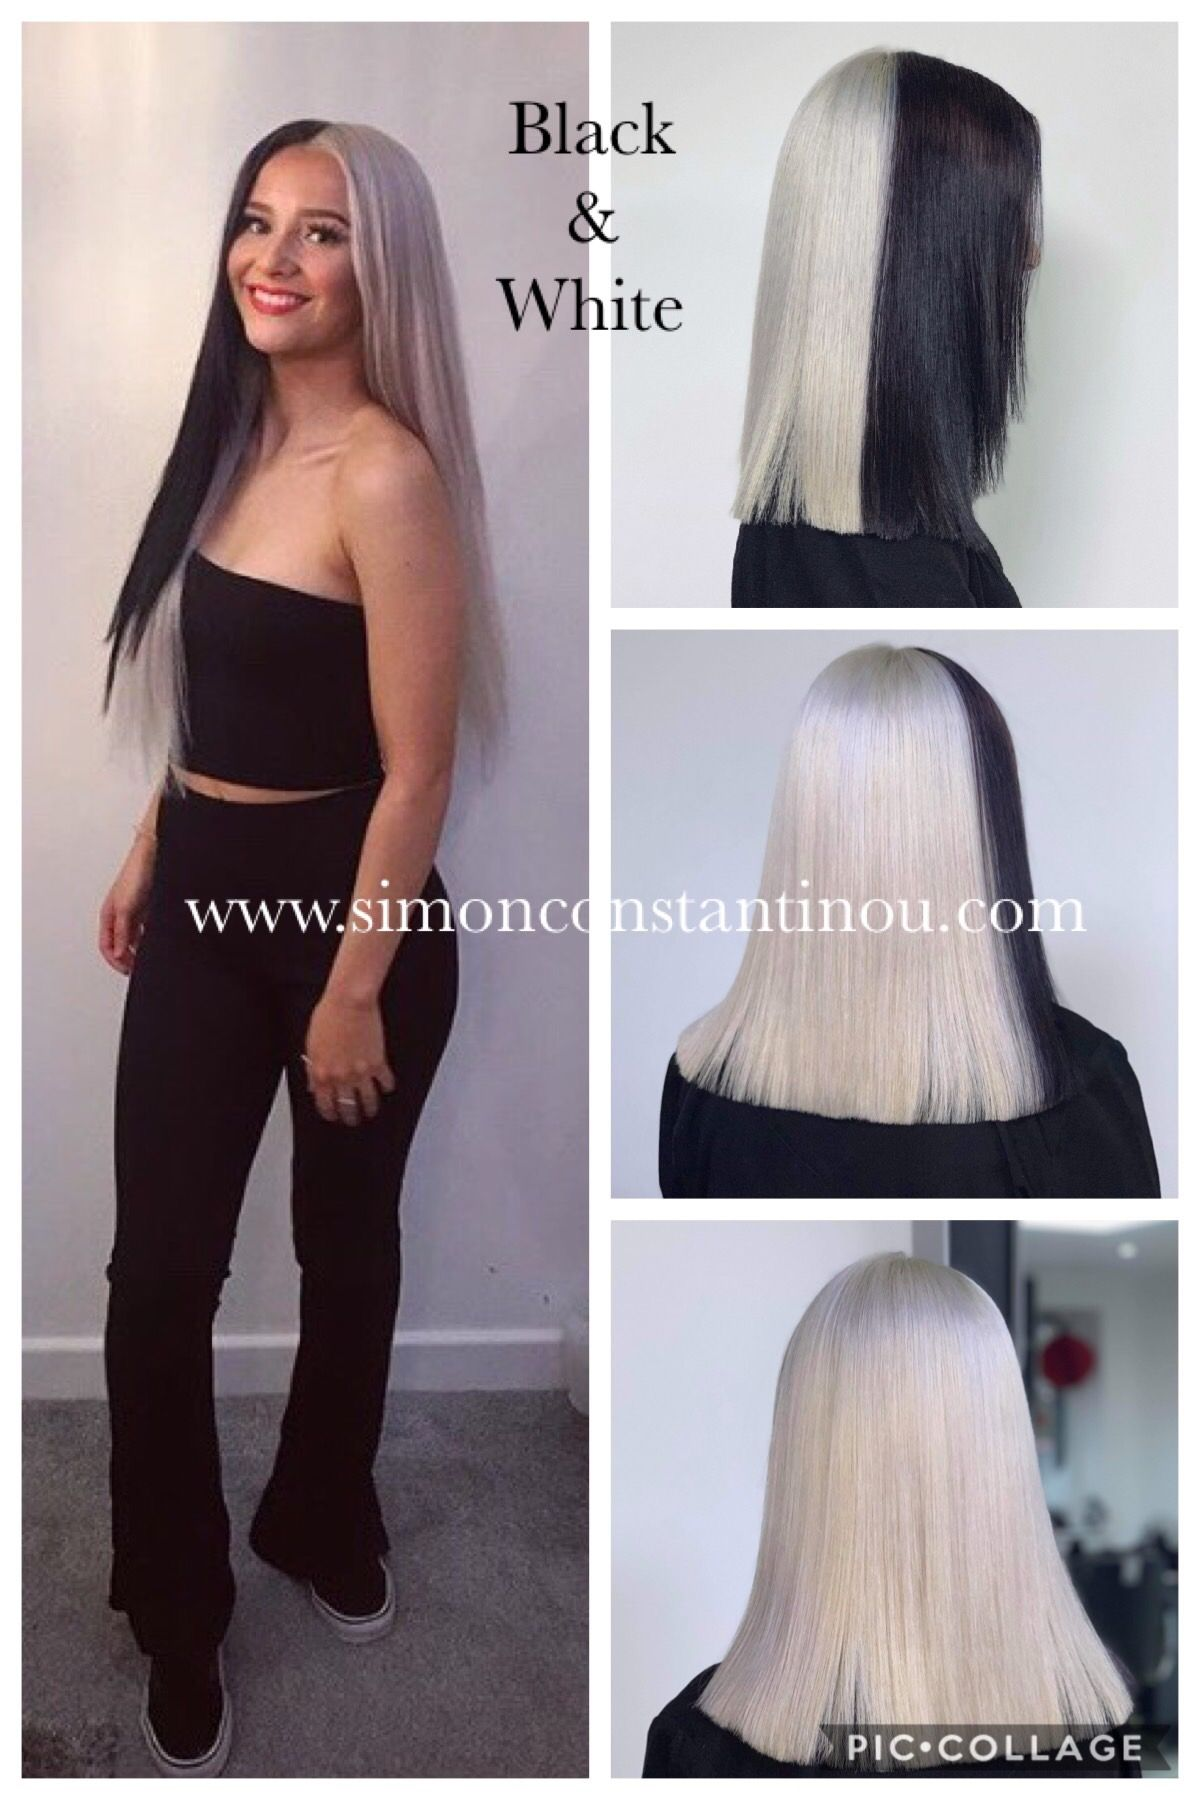 We Love It When Soph Has A Hair Idea This Black Streak Added Into Platinum Blonde Gives Her The Opportunity Hair And Beauty Salon Ombre Hair Hair Color Trends